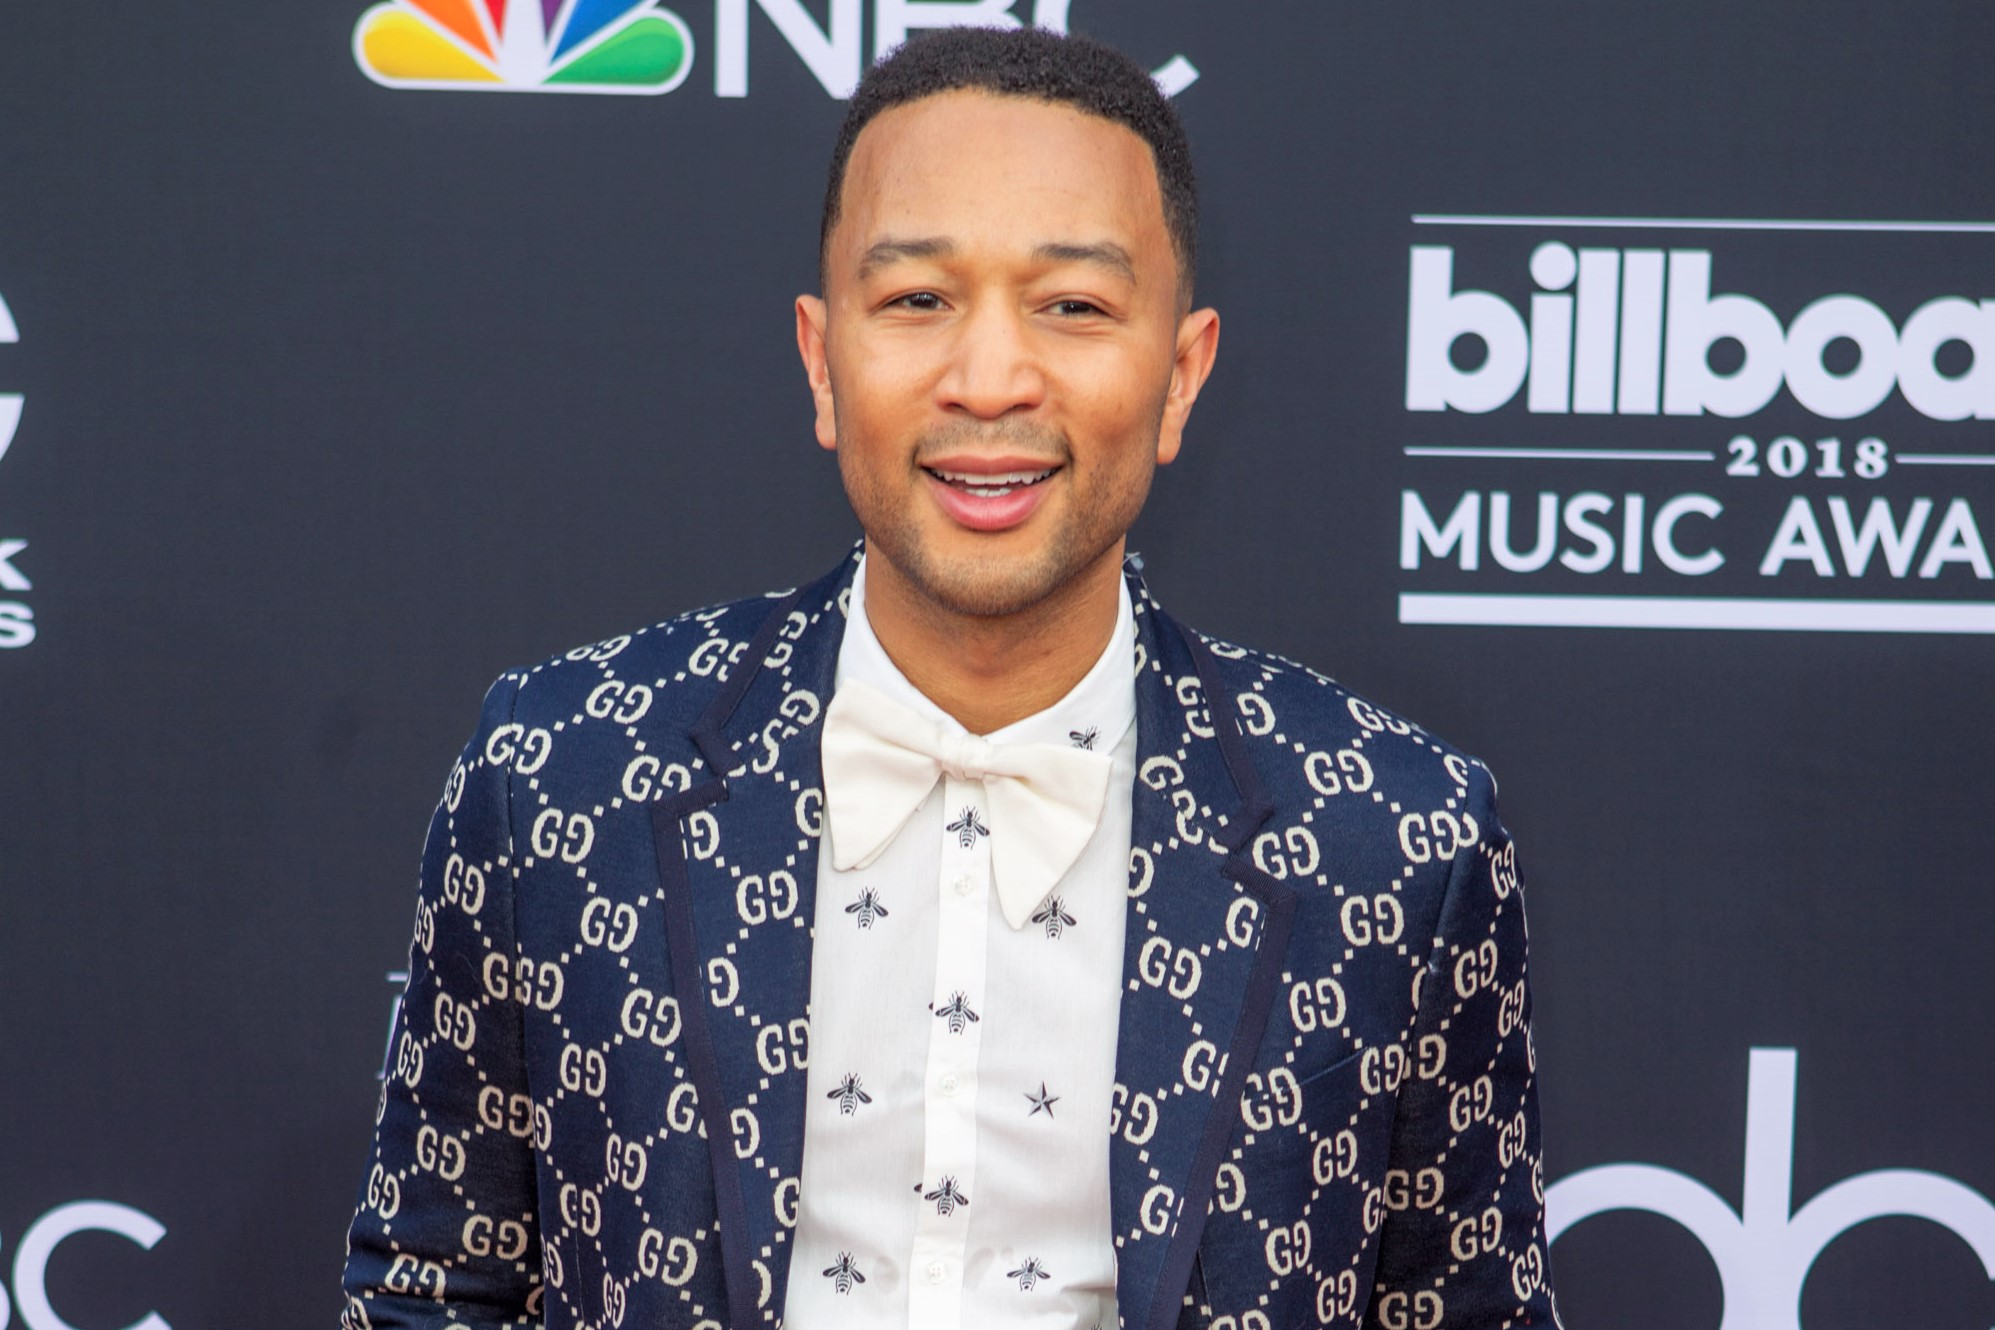 Singer John Legend Gucci Blazer BBMA 2018 Red Carpet